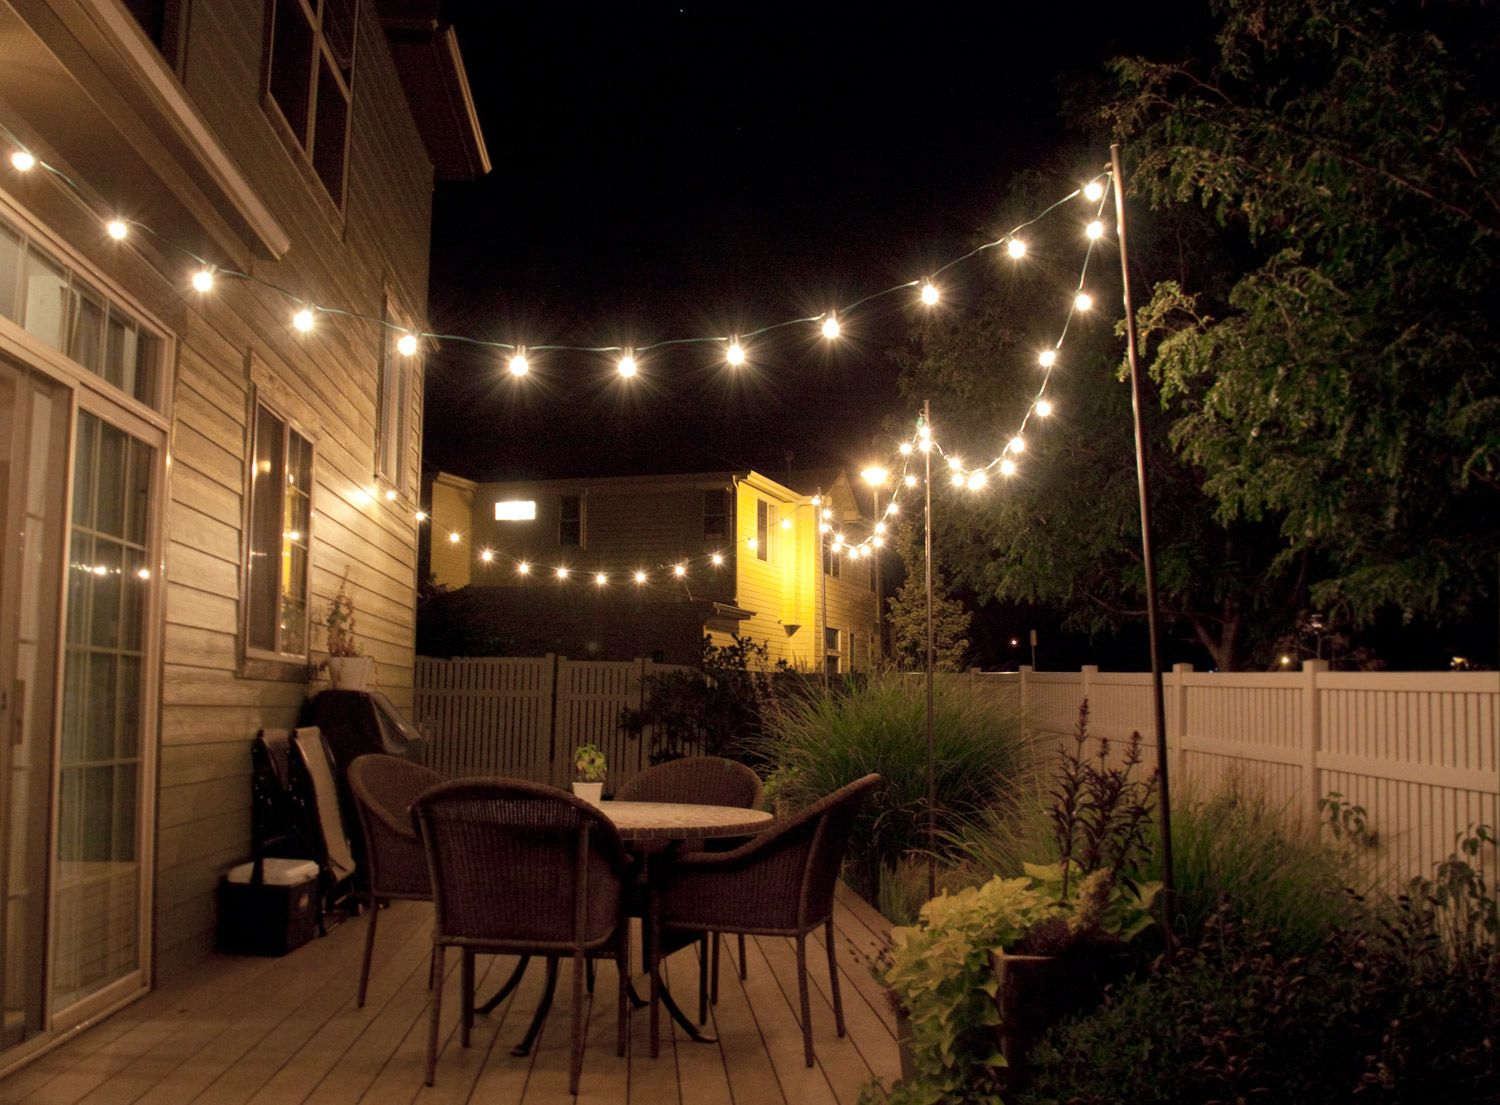 String Patio Lights Unique How To Make Inexpensive Poles To Hang String Lights On  Café Style